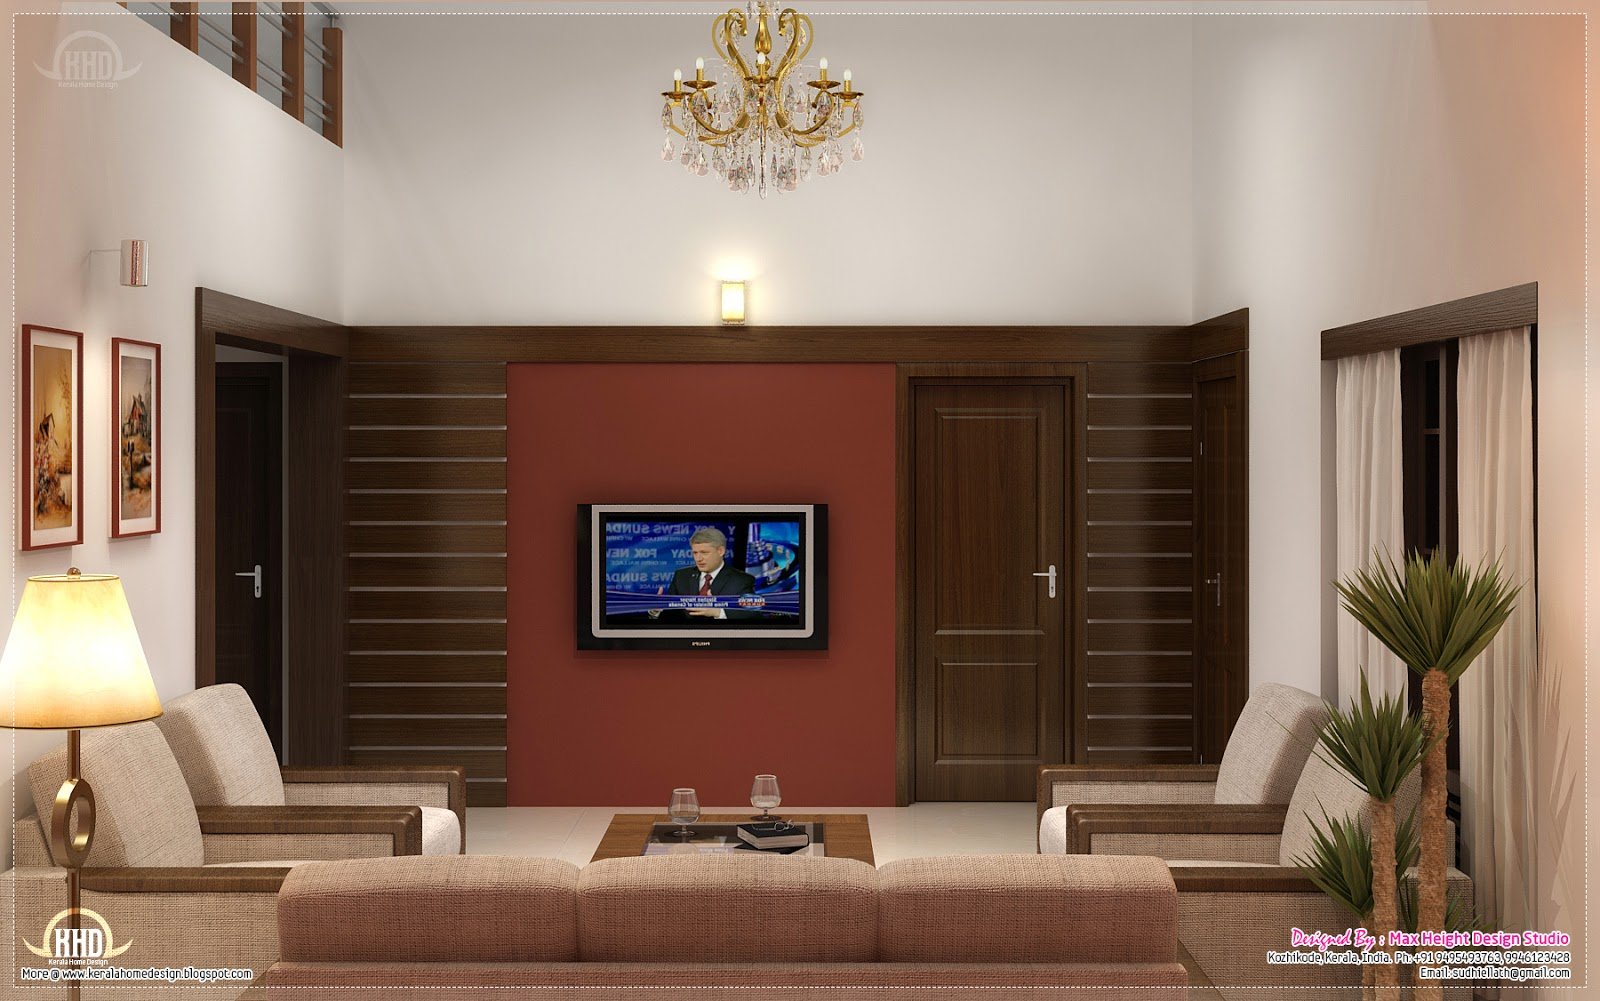 Kerala home interior design photos home design ideas for Kerala home interior